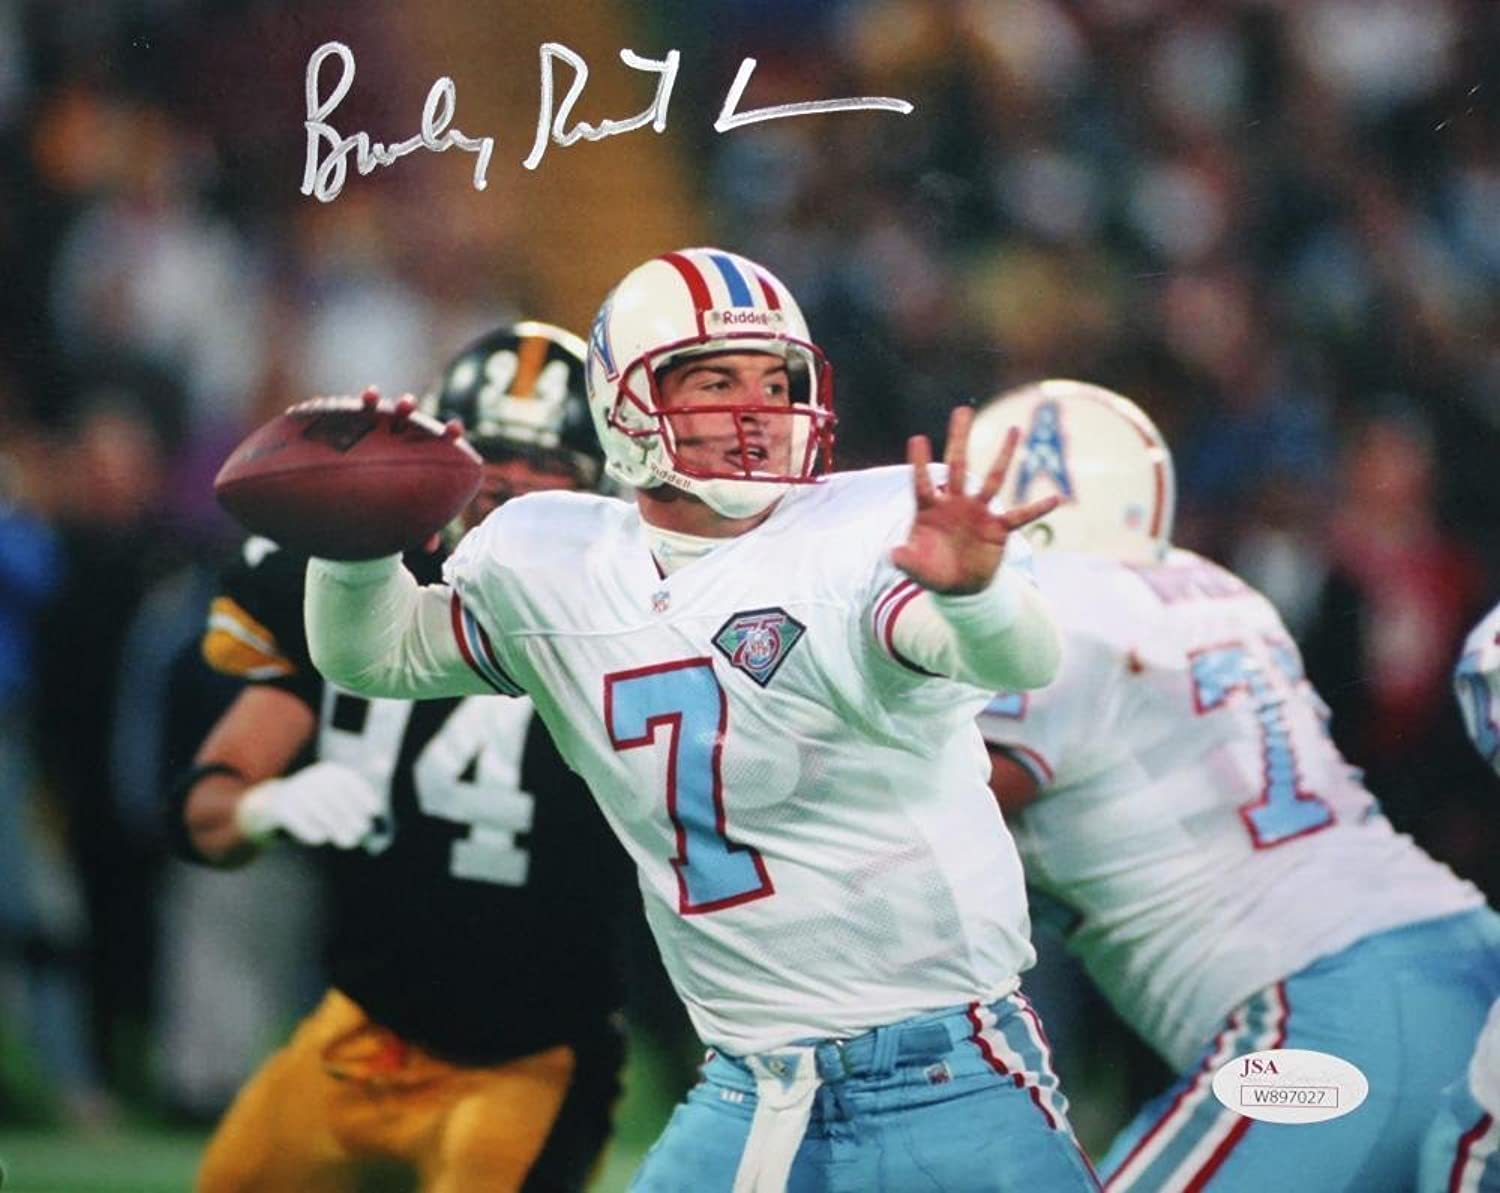 Signed Bucky Richardson Photo  8x10 Passing Witness  JSA Certified  Autographed NFL Photos